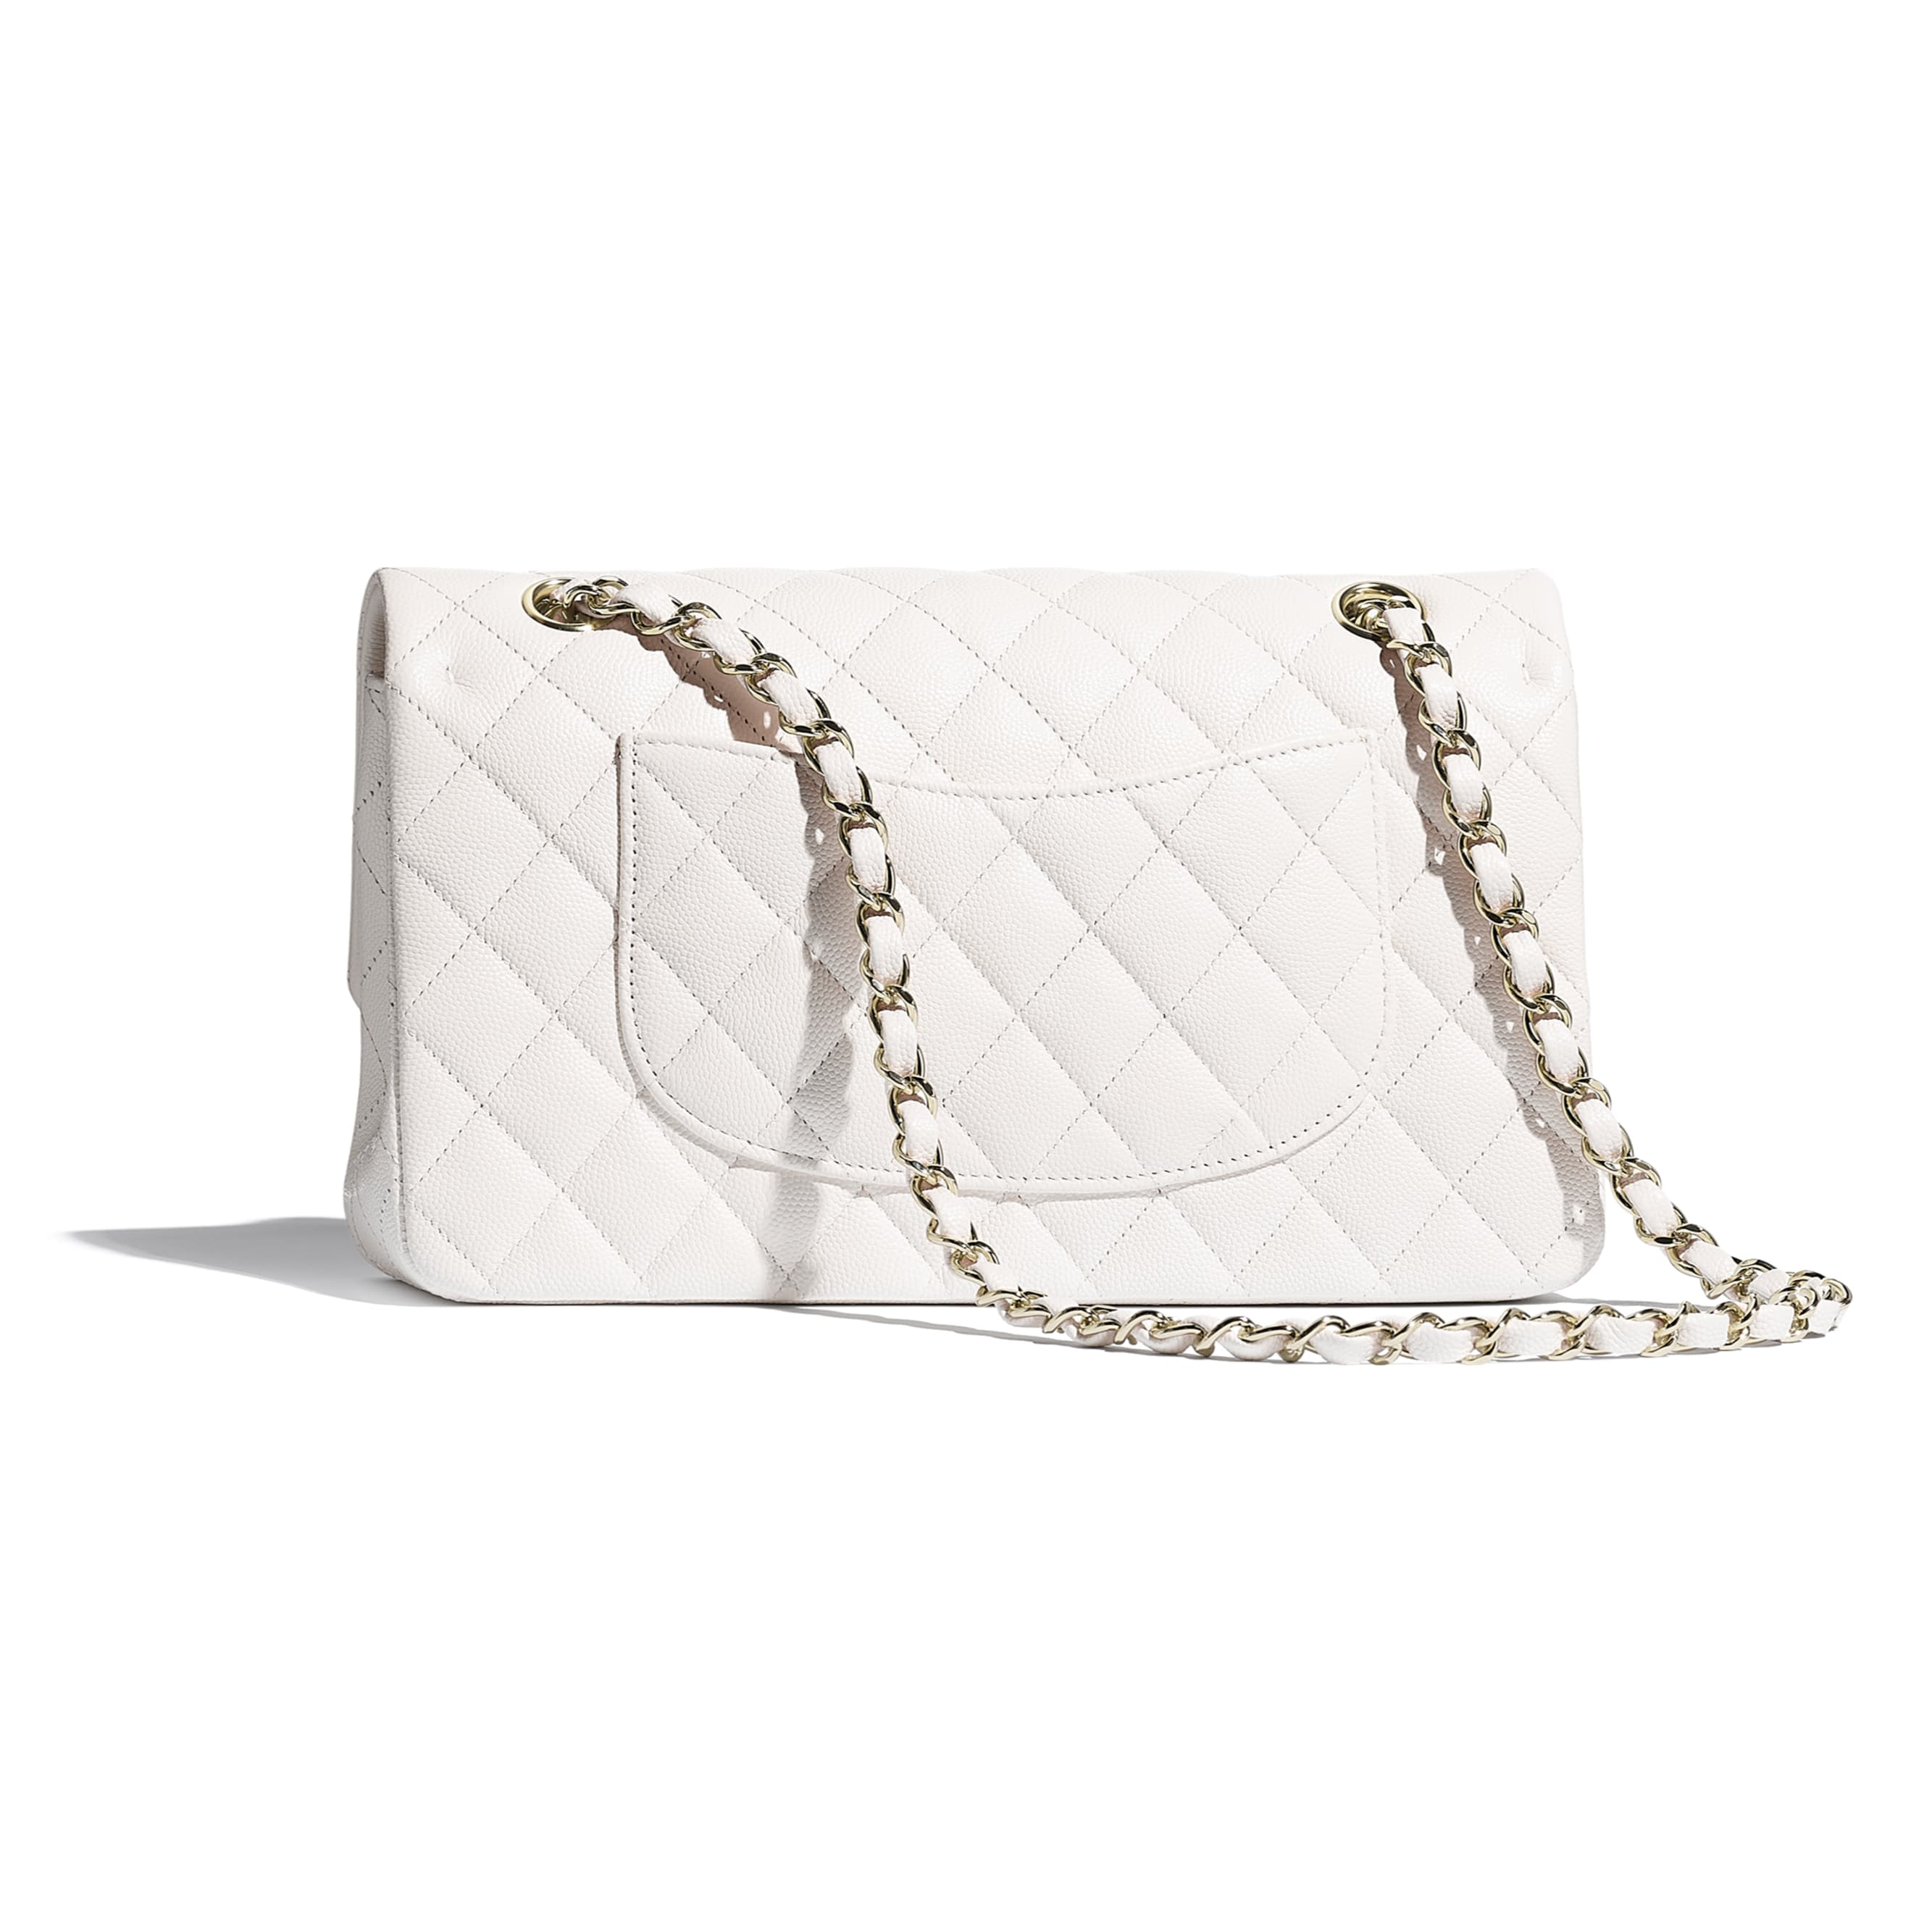 Classic Handbag - White - Grained Calfskin & Gold-Tone Metal - CHANEL - Alternative view - see standard sized version